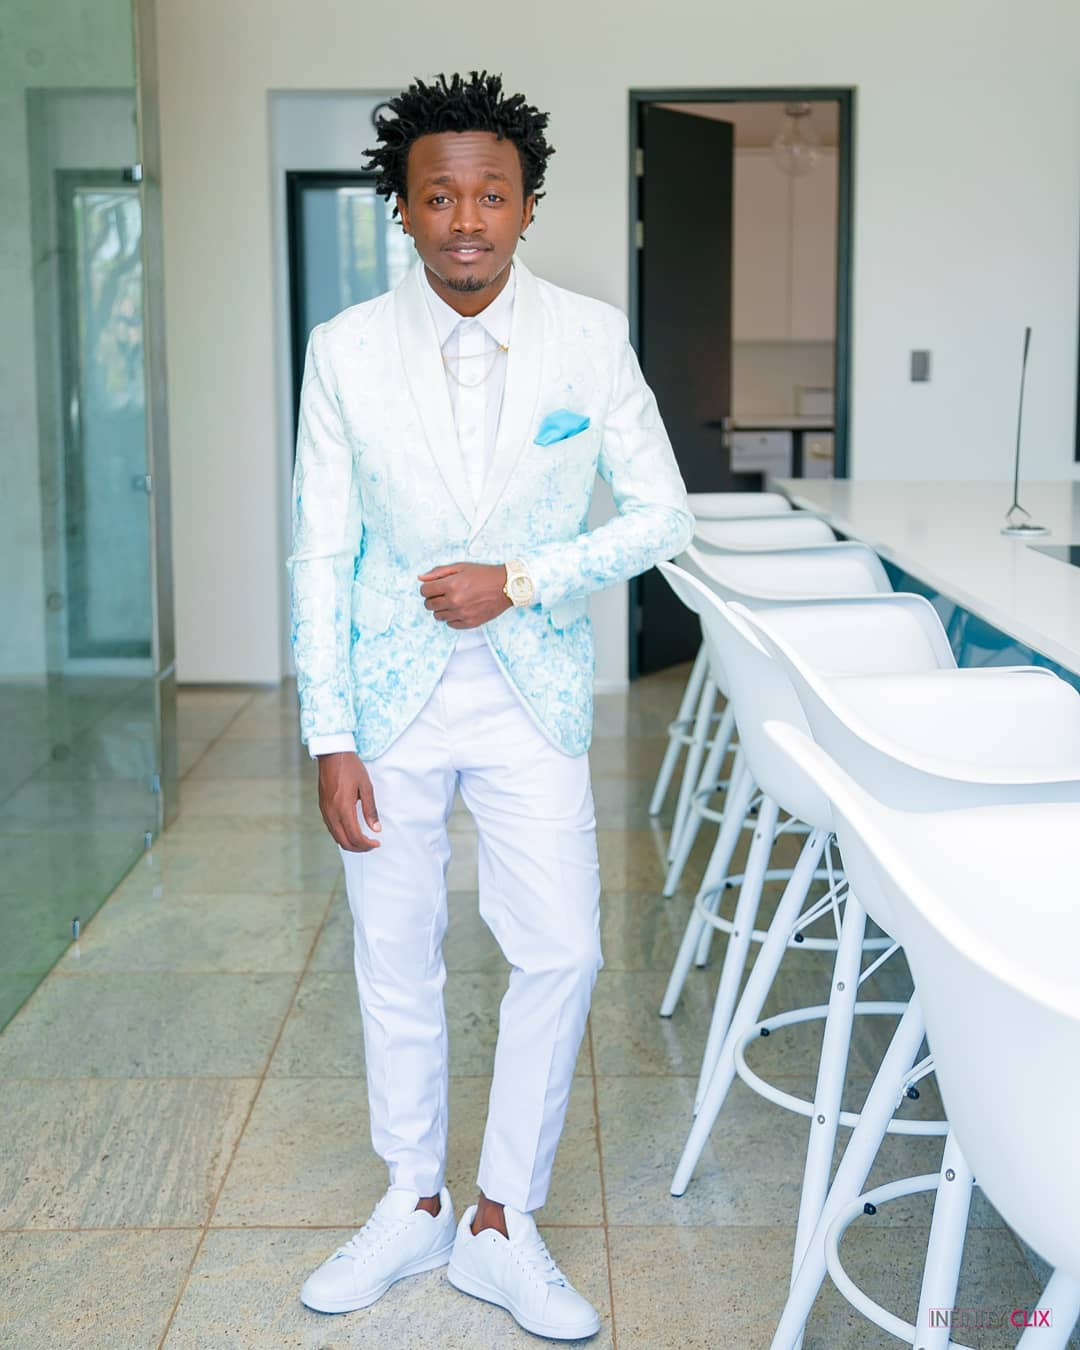 bahati kenya - Times when gospel artistes have found themselves in ungodly situations